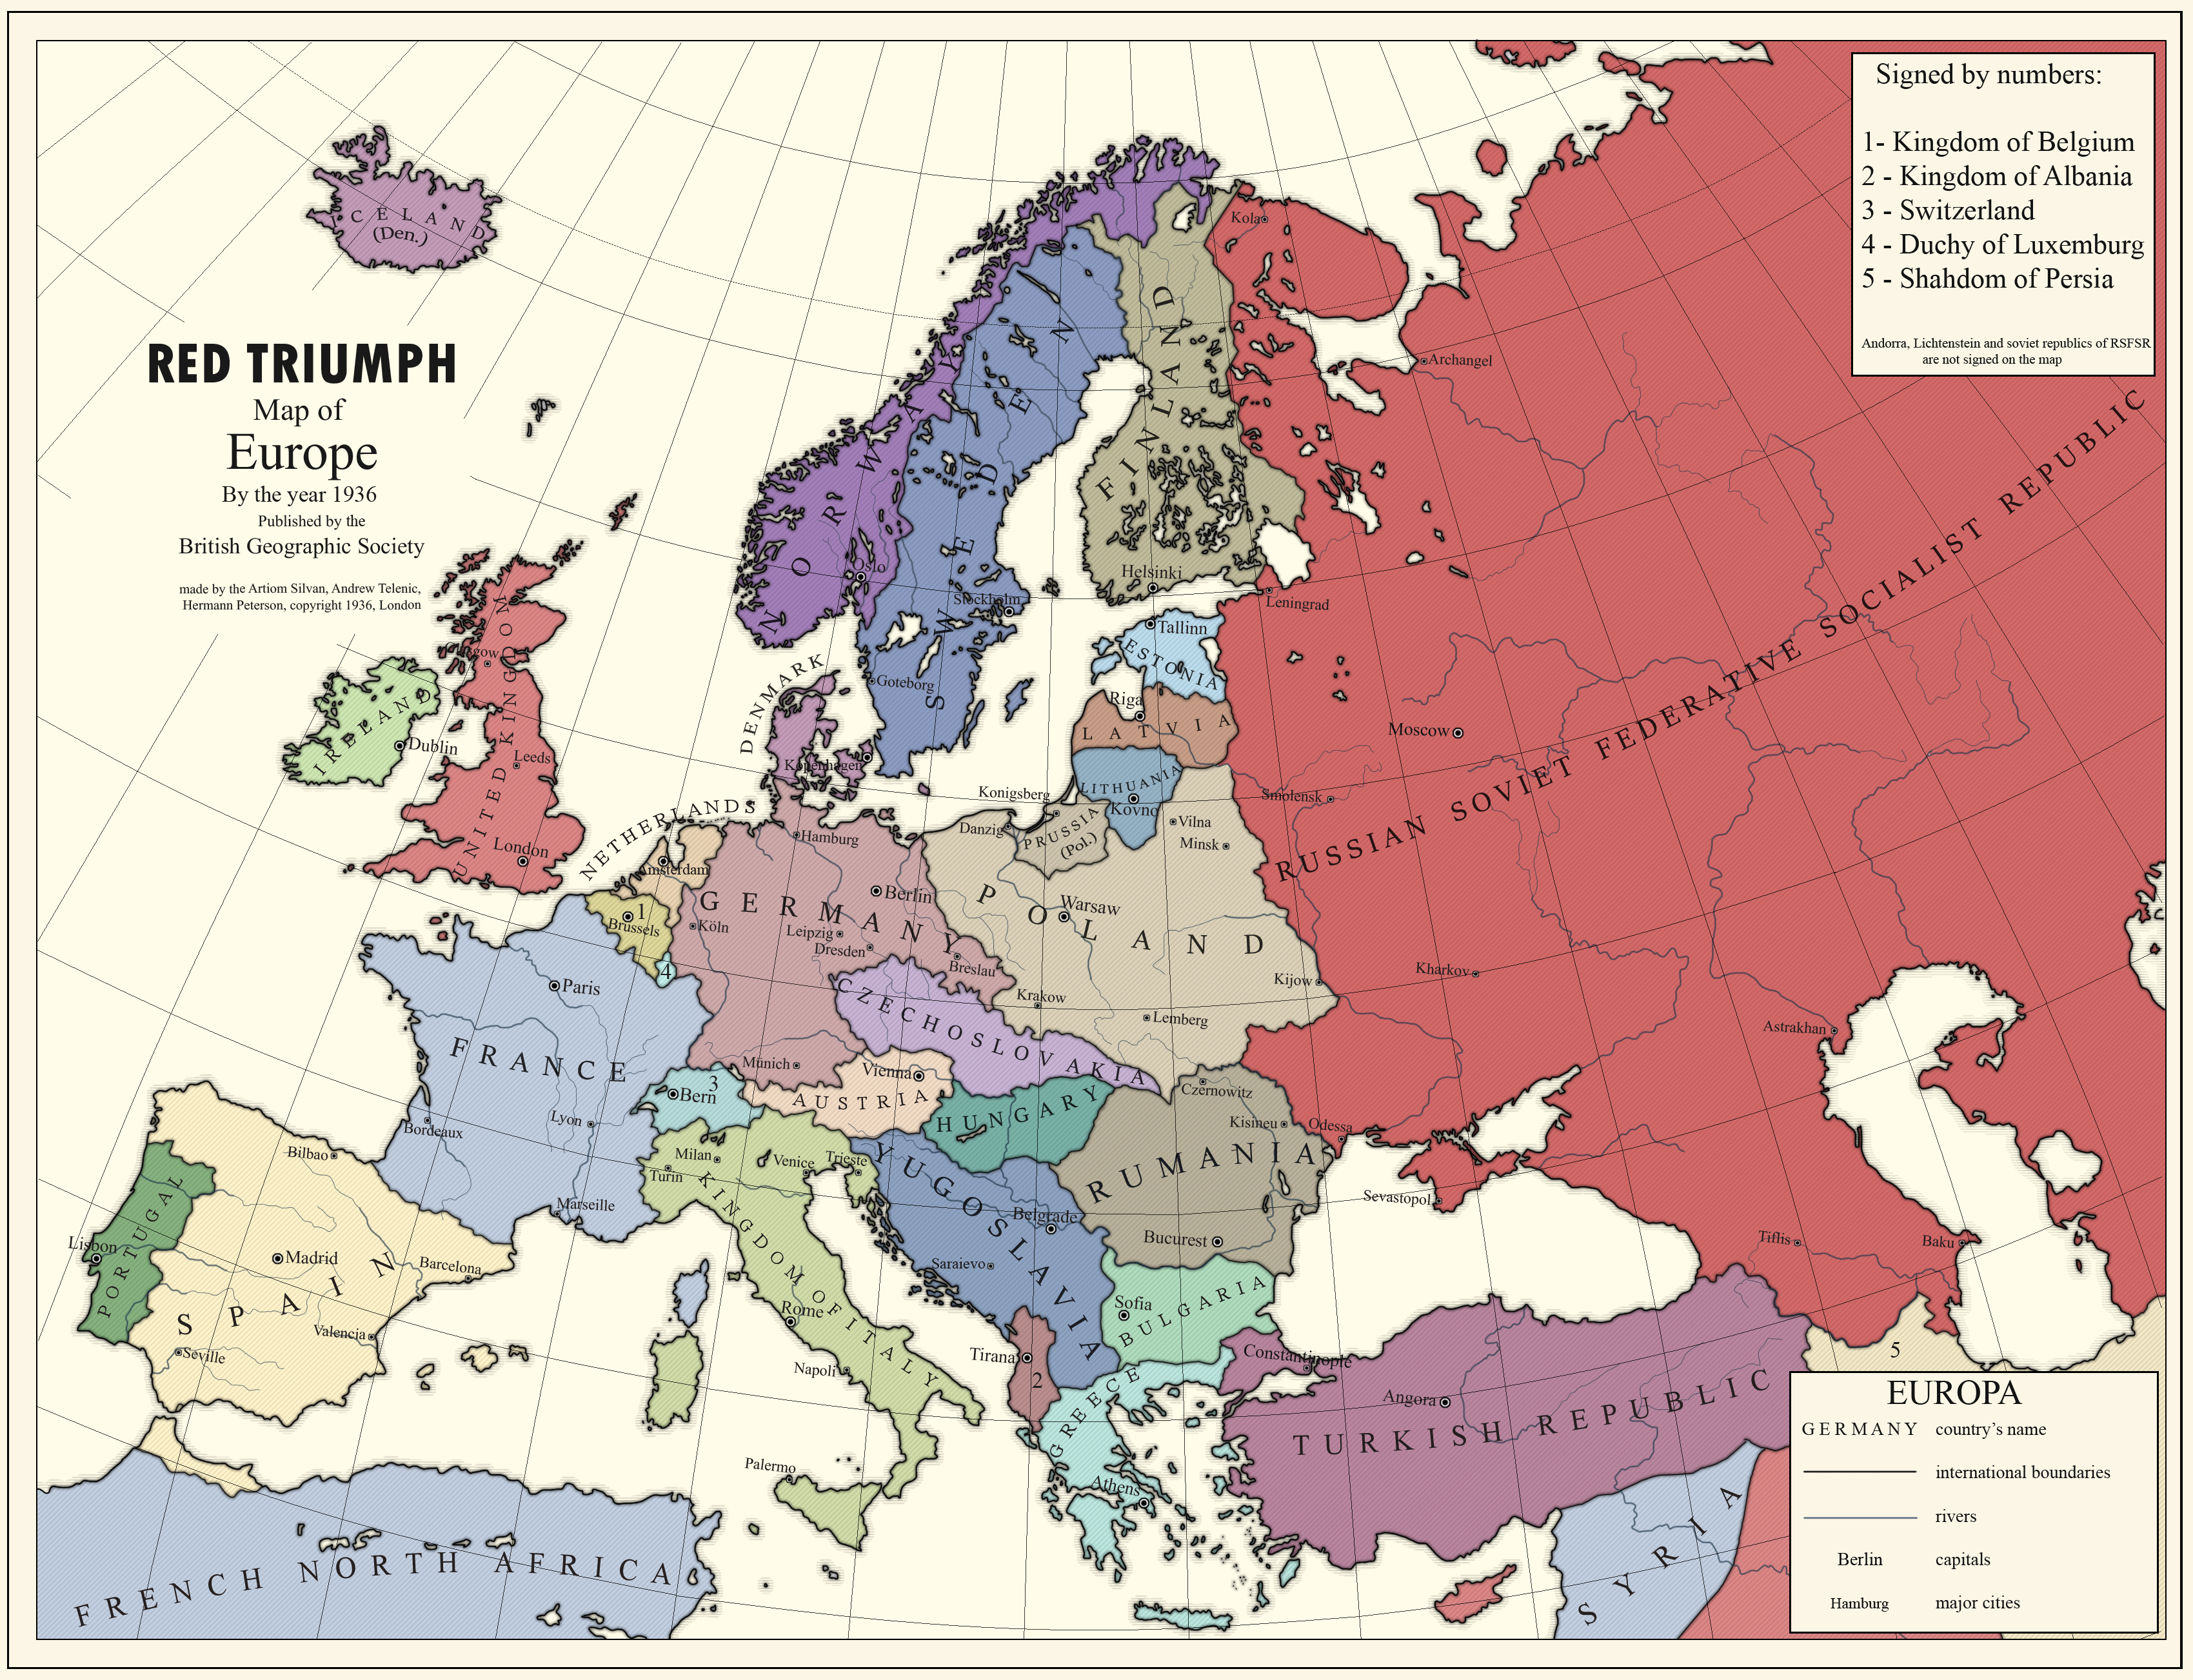 map of europe in 1936 RED TRIUMPH] Map of Europe by the 1936 by kreiviskai on DeviantArt